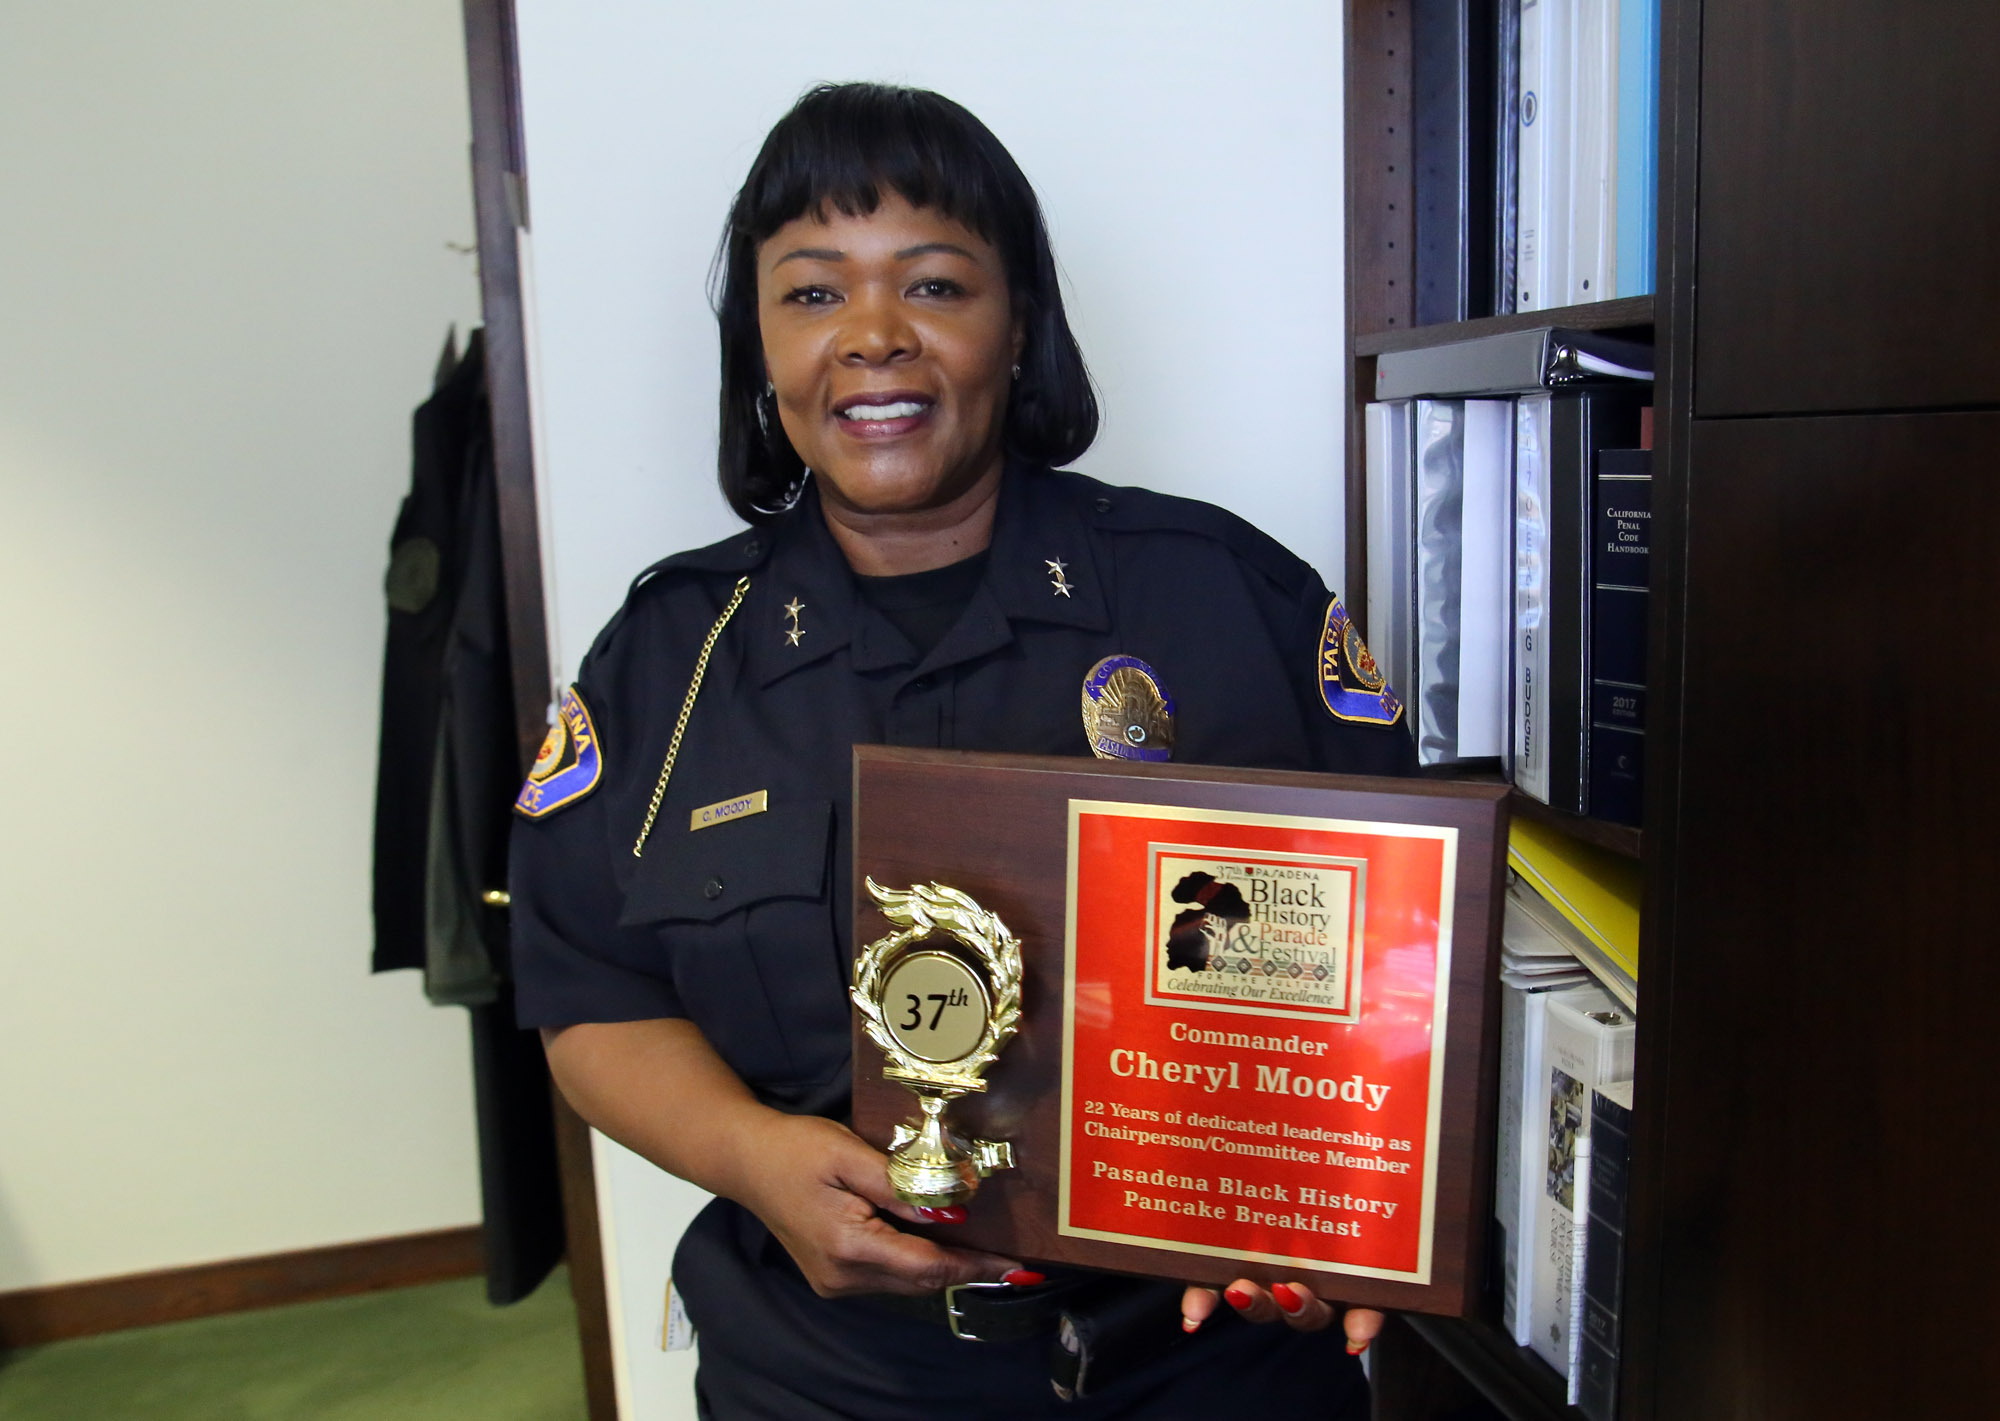 Commander Cheryl Moody from the Pasadena Police Department pose with an award she received during black history parade festival. Cheryl is one of the founding members of the San Gabriel Valley Chapter of the National Organization of Black Law Enforcement Executives (NOBLE) which started in 2003. Photo by James Carbone